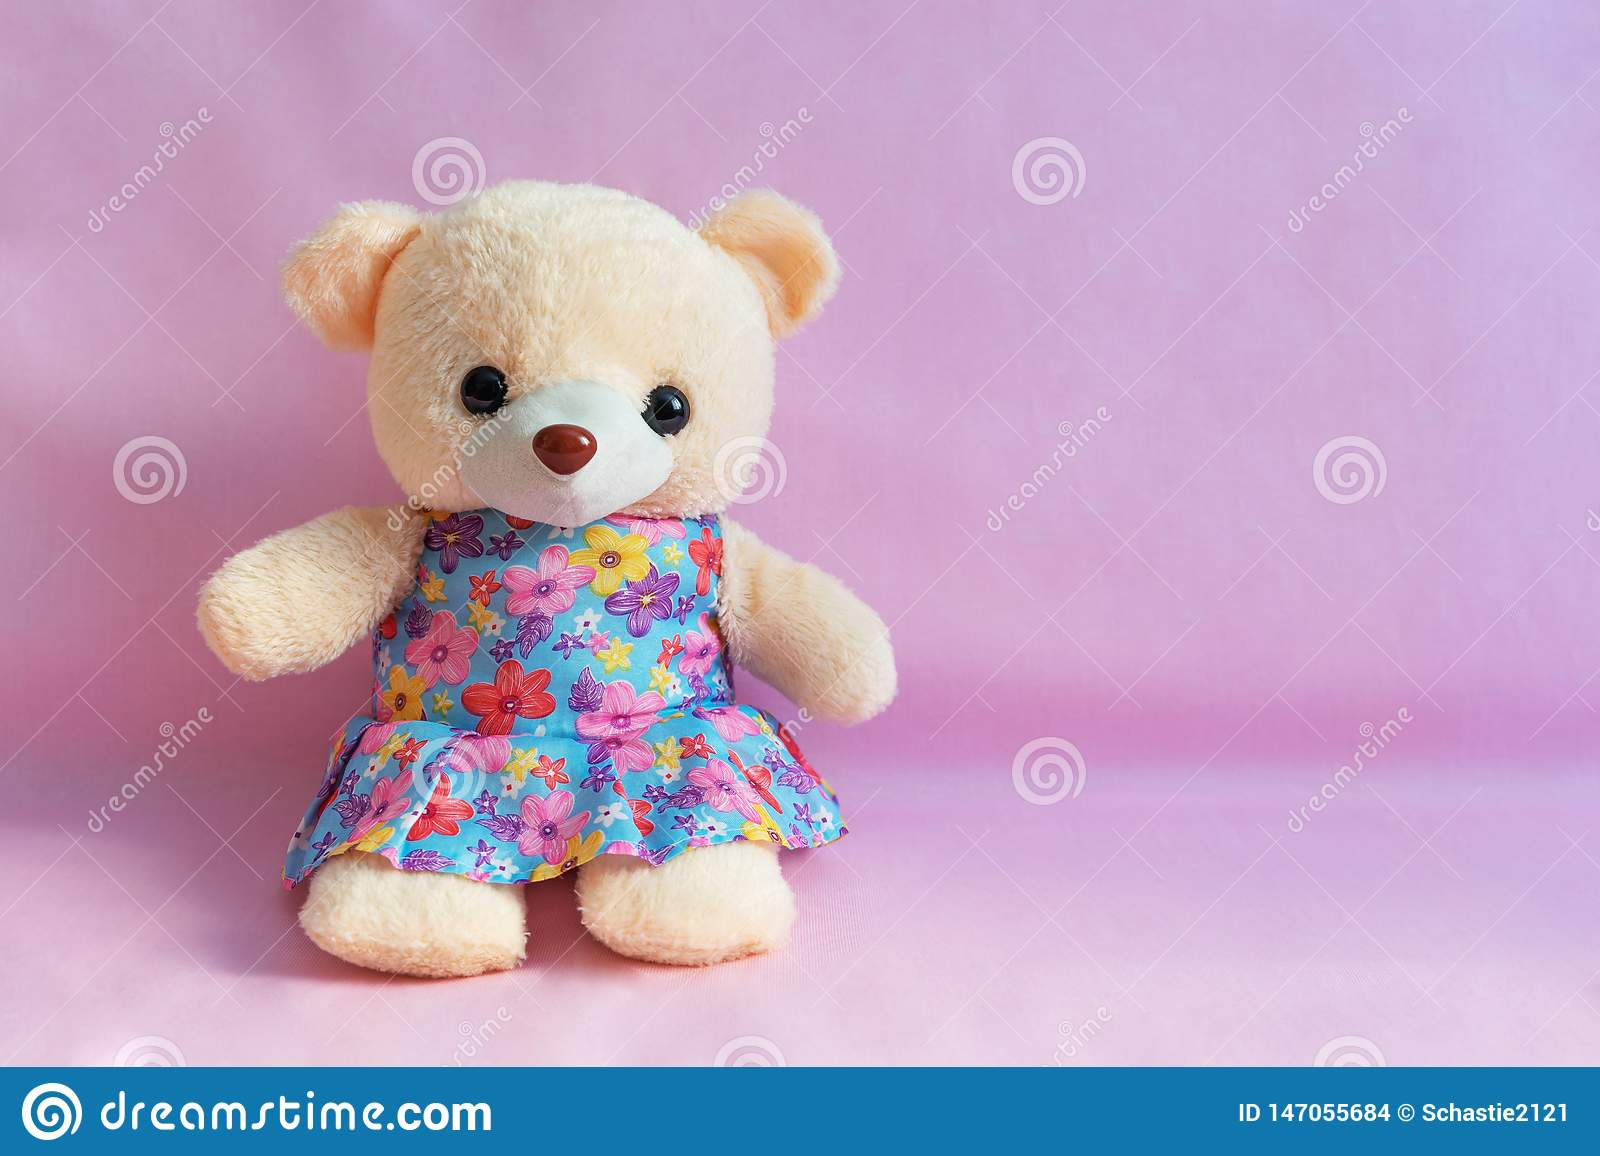 children`s toy bear on a pink background.